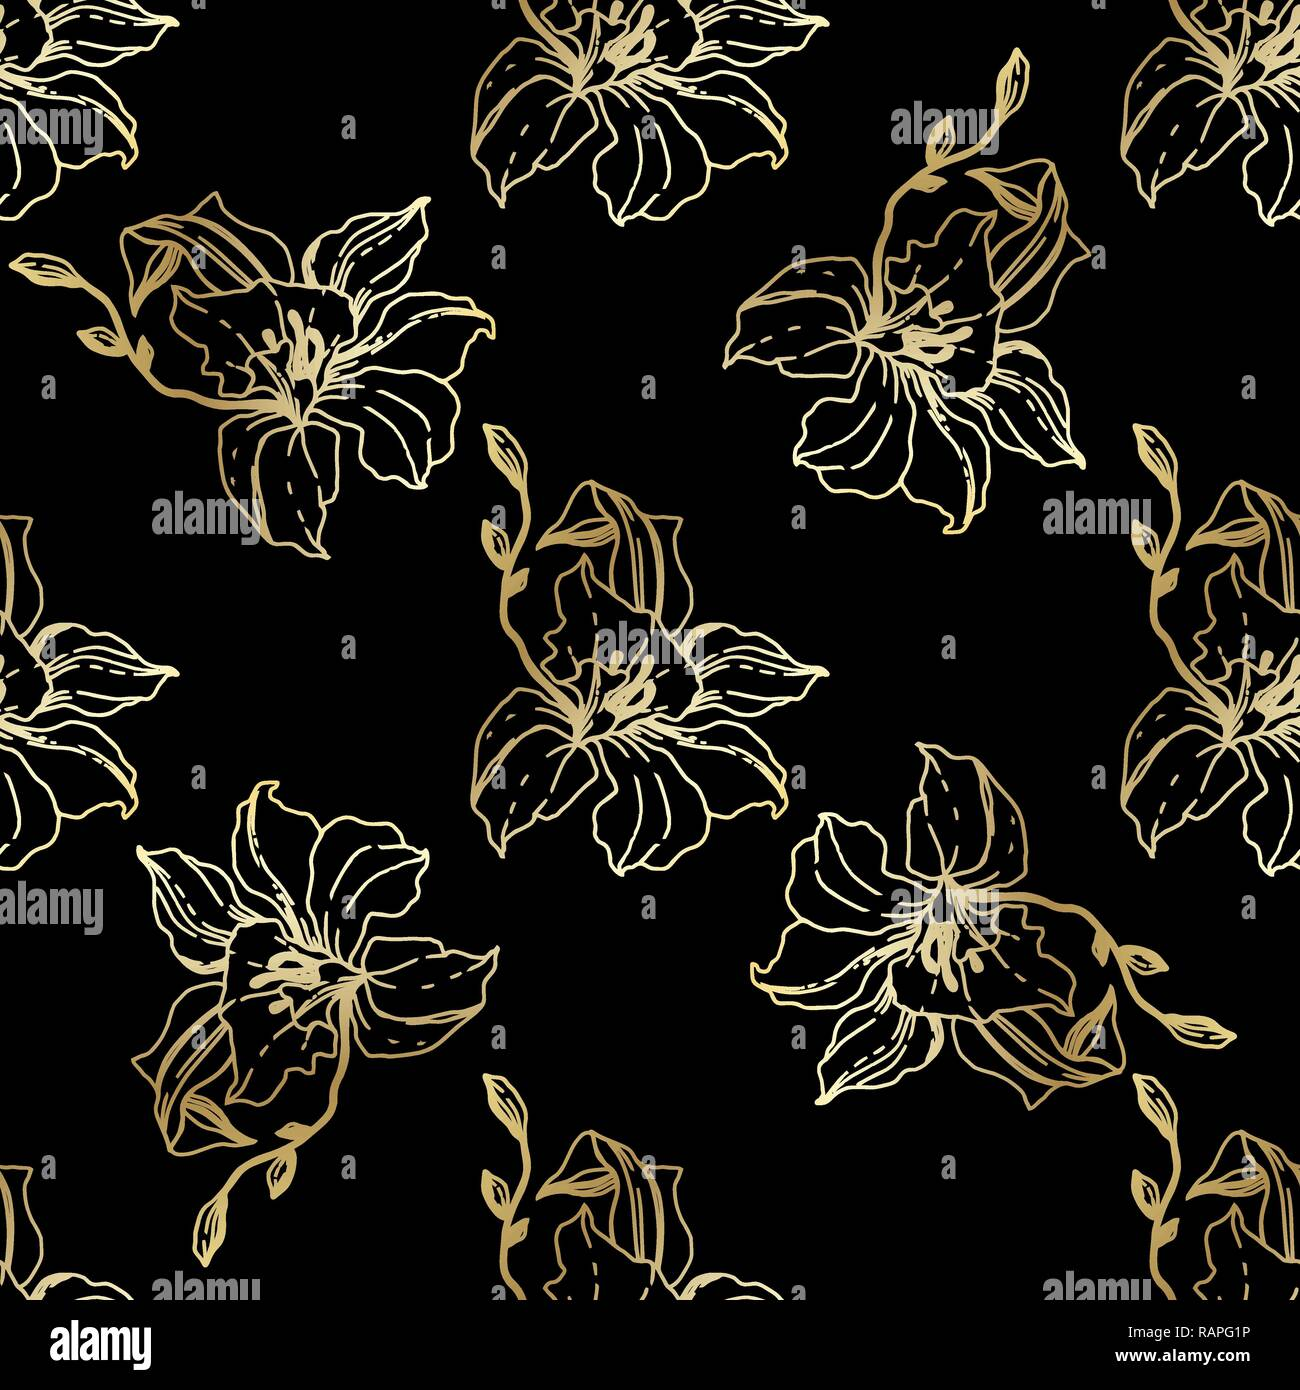 Vector Golden Orchid Floral Botanical Flower Seamless Background